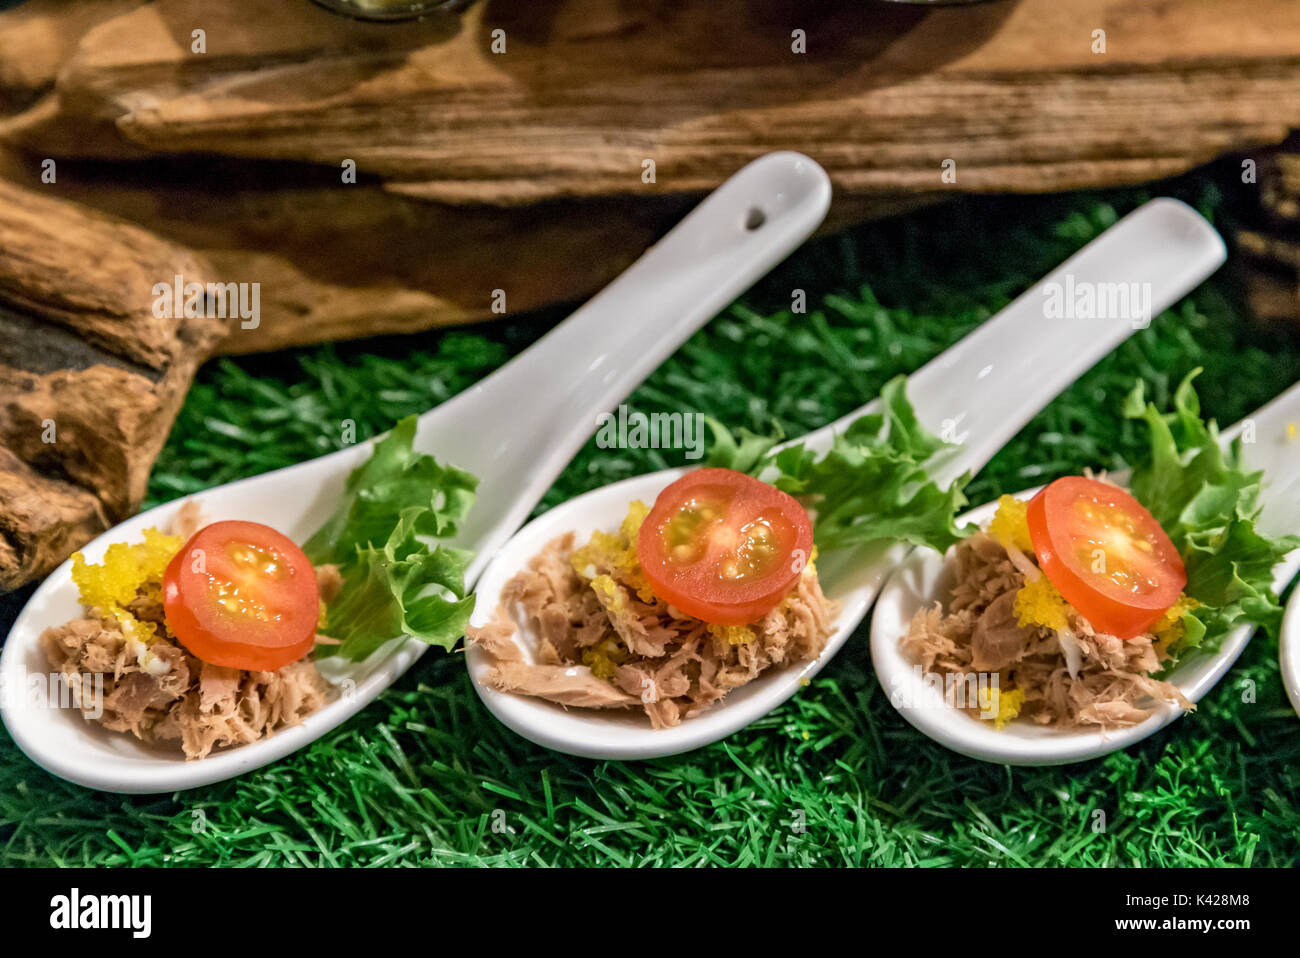 Vareity of canape on spoon - Stock Image